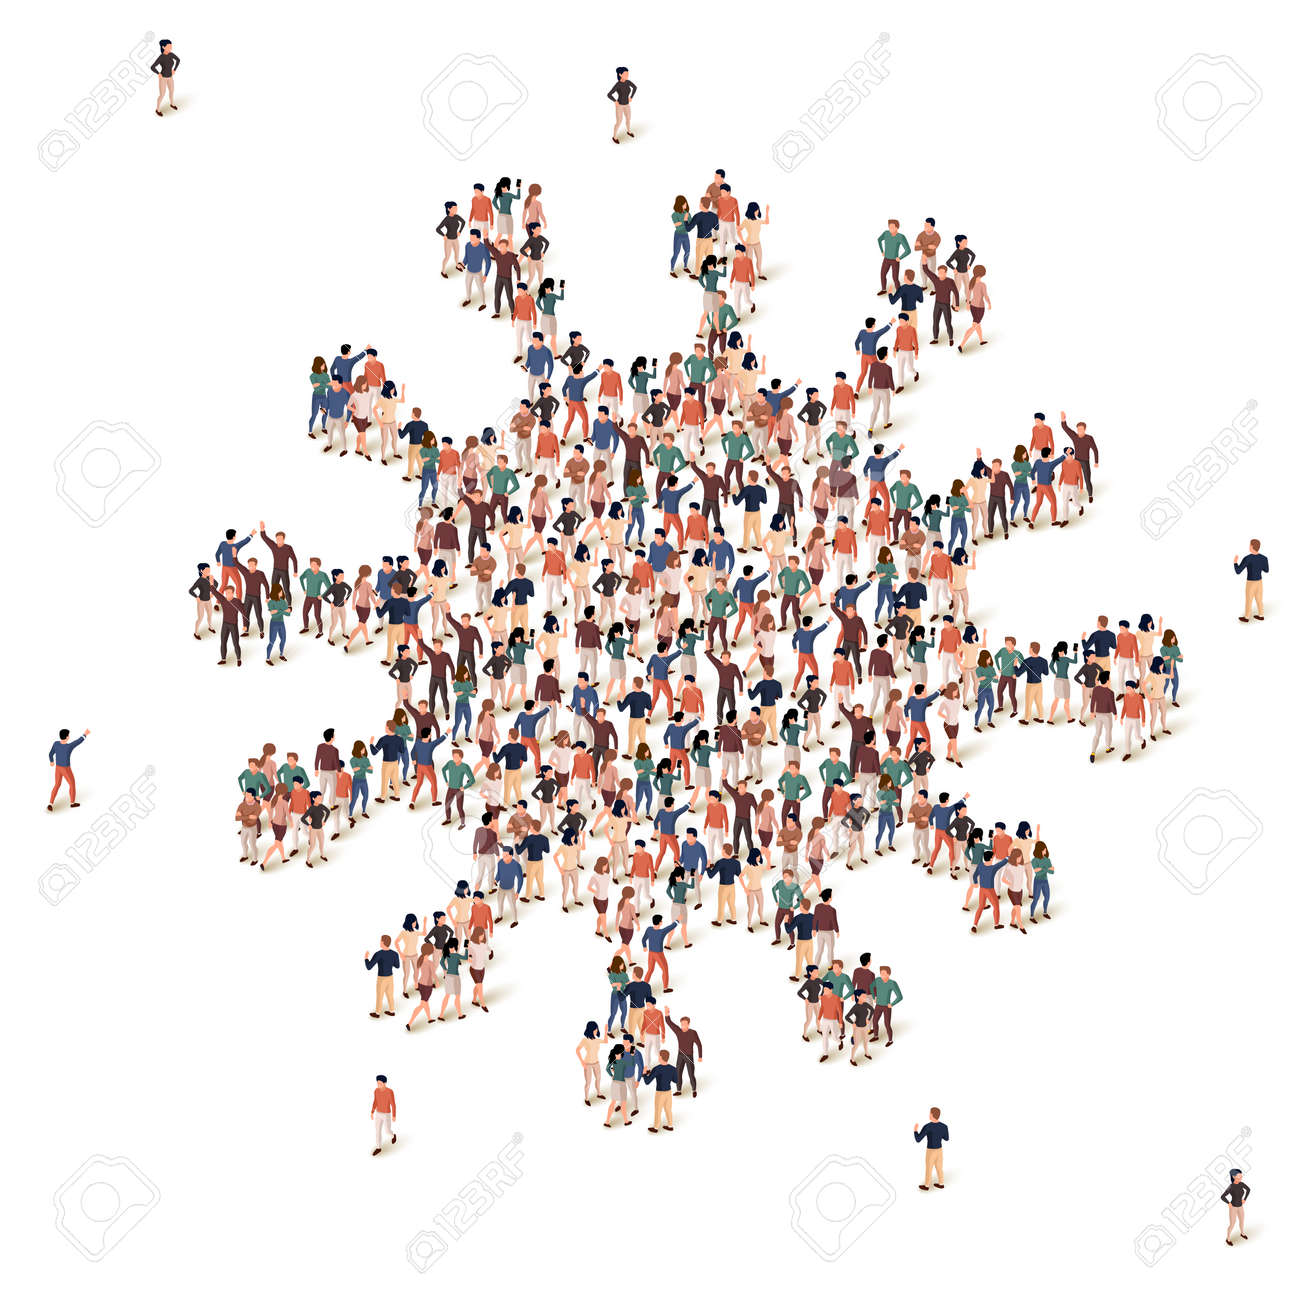 Group of people in shape of coronavirus form. Covid-19 infection epidemic or pandemic. - 142336391